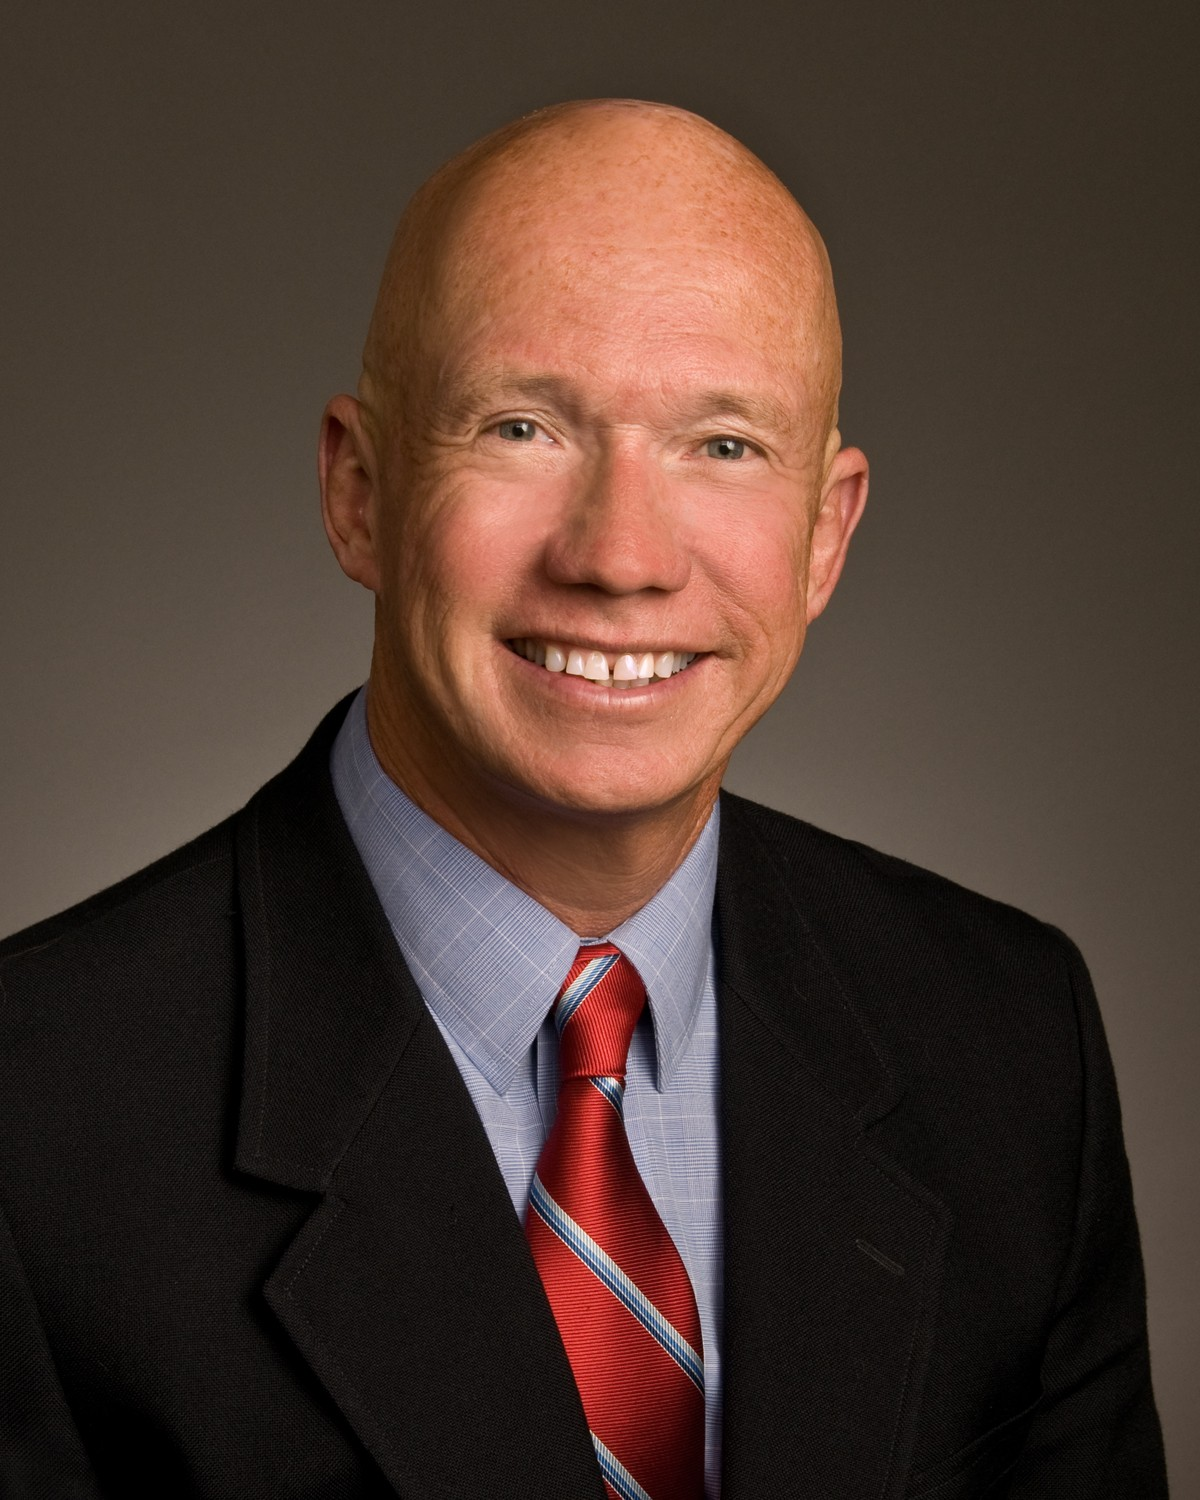 Michael J Smith, MD